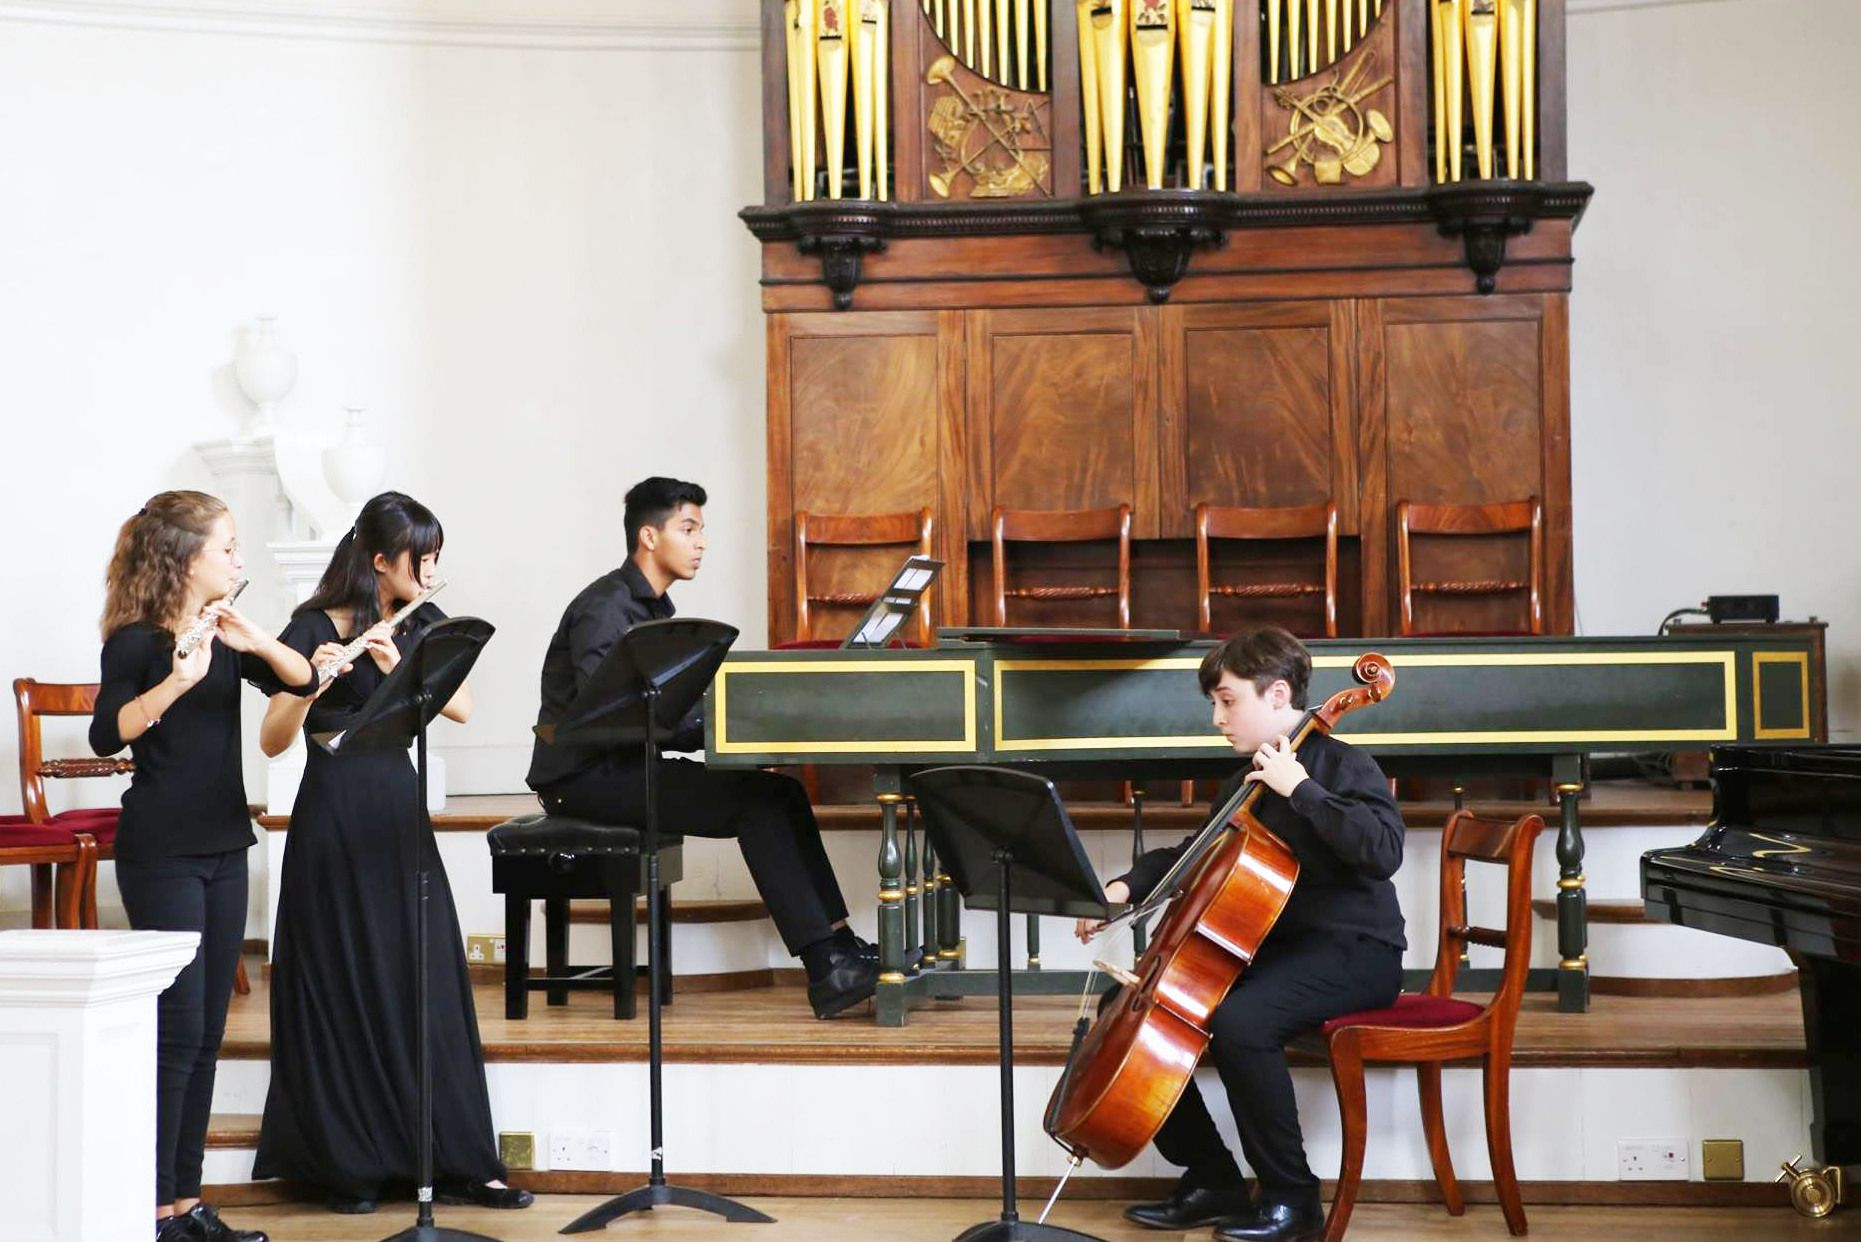 Ingenium Chamber Music concert at the Holywell Music Room, Oxford